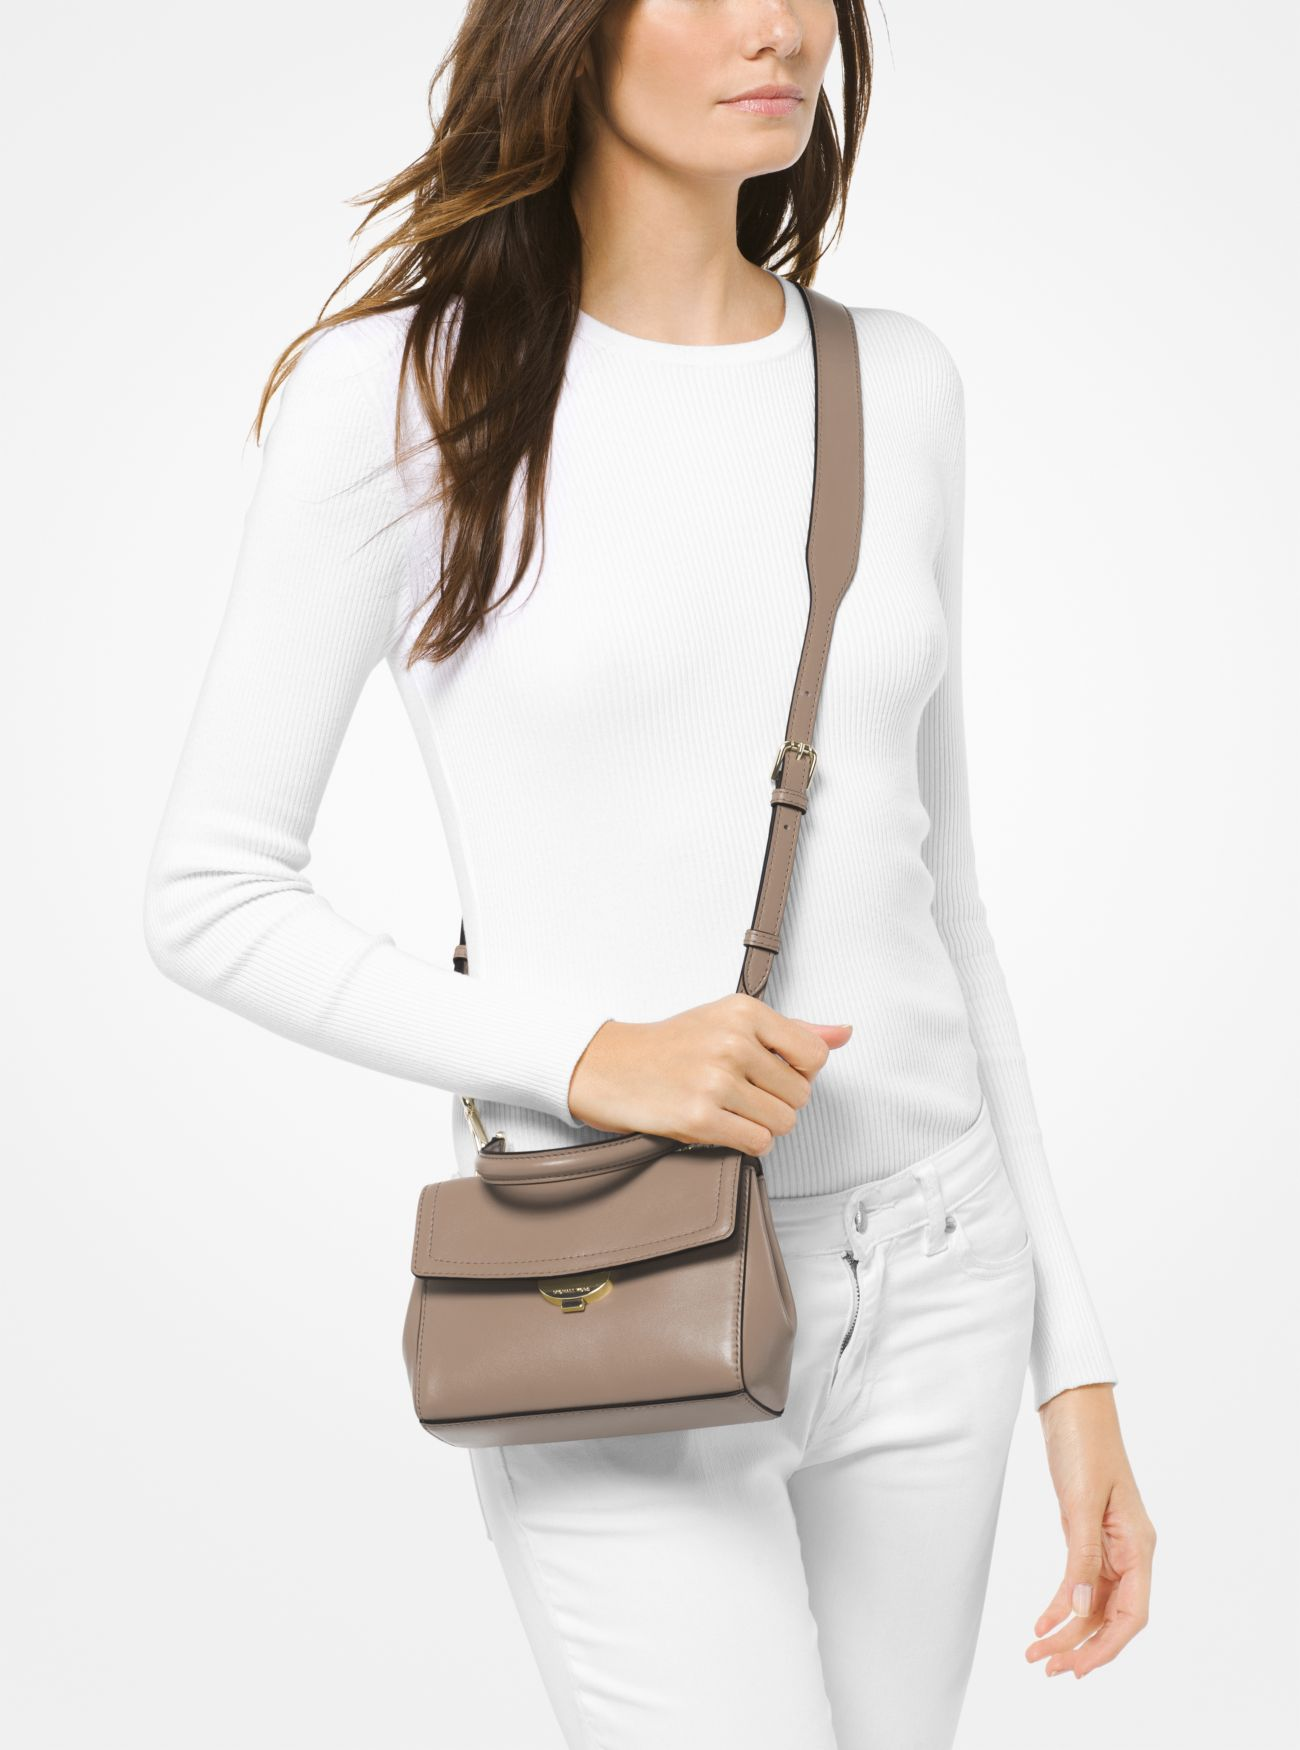 664beba3b7a963 ... Ava Extra-Small Leather Crossbody Bag. MICHAEL Michael Kors